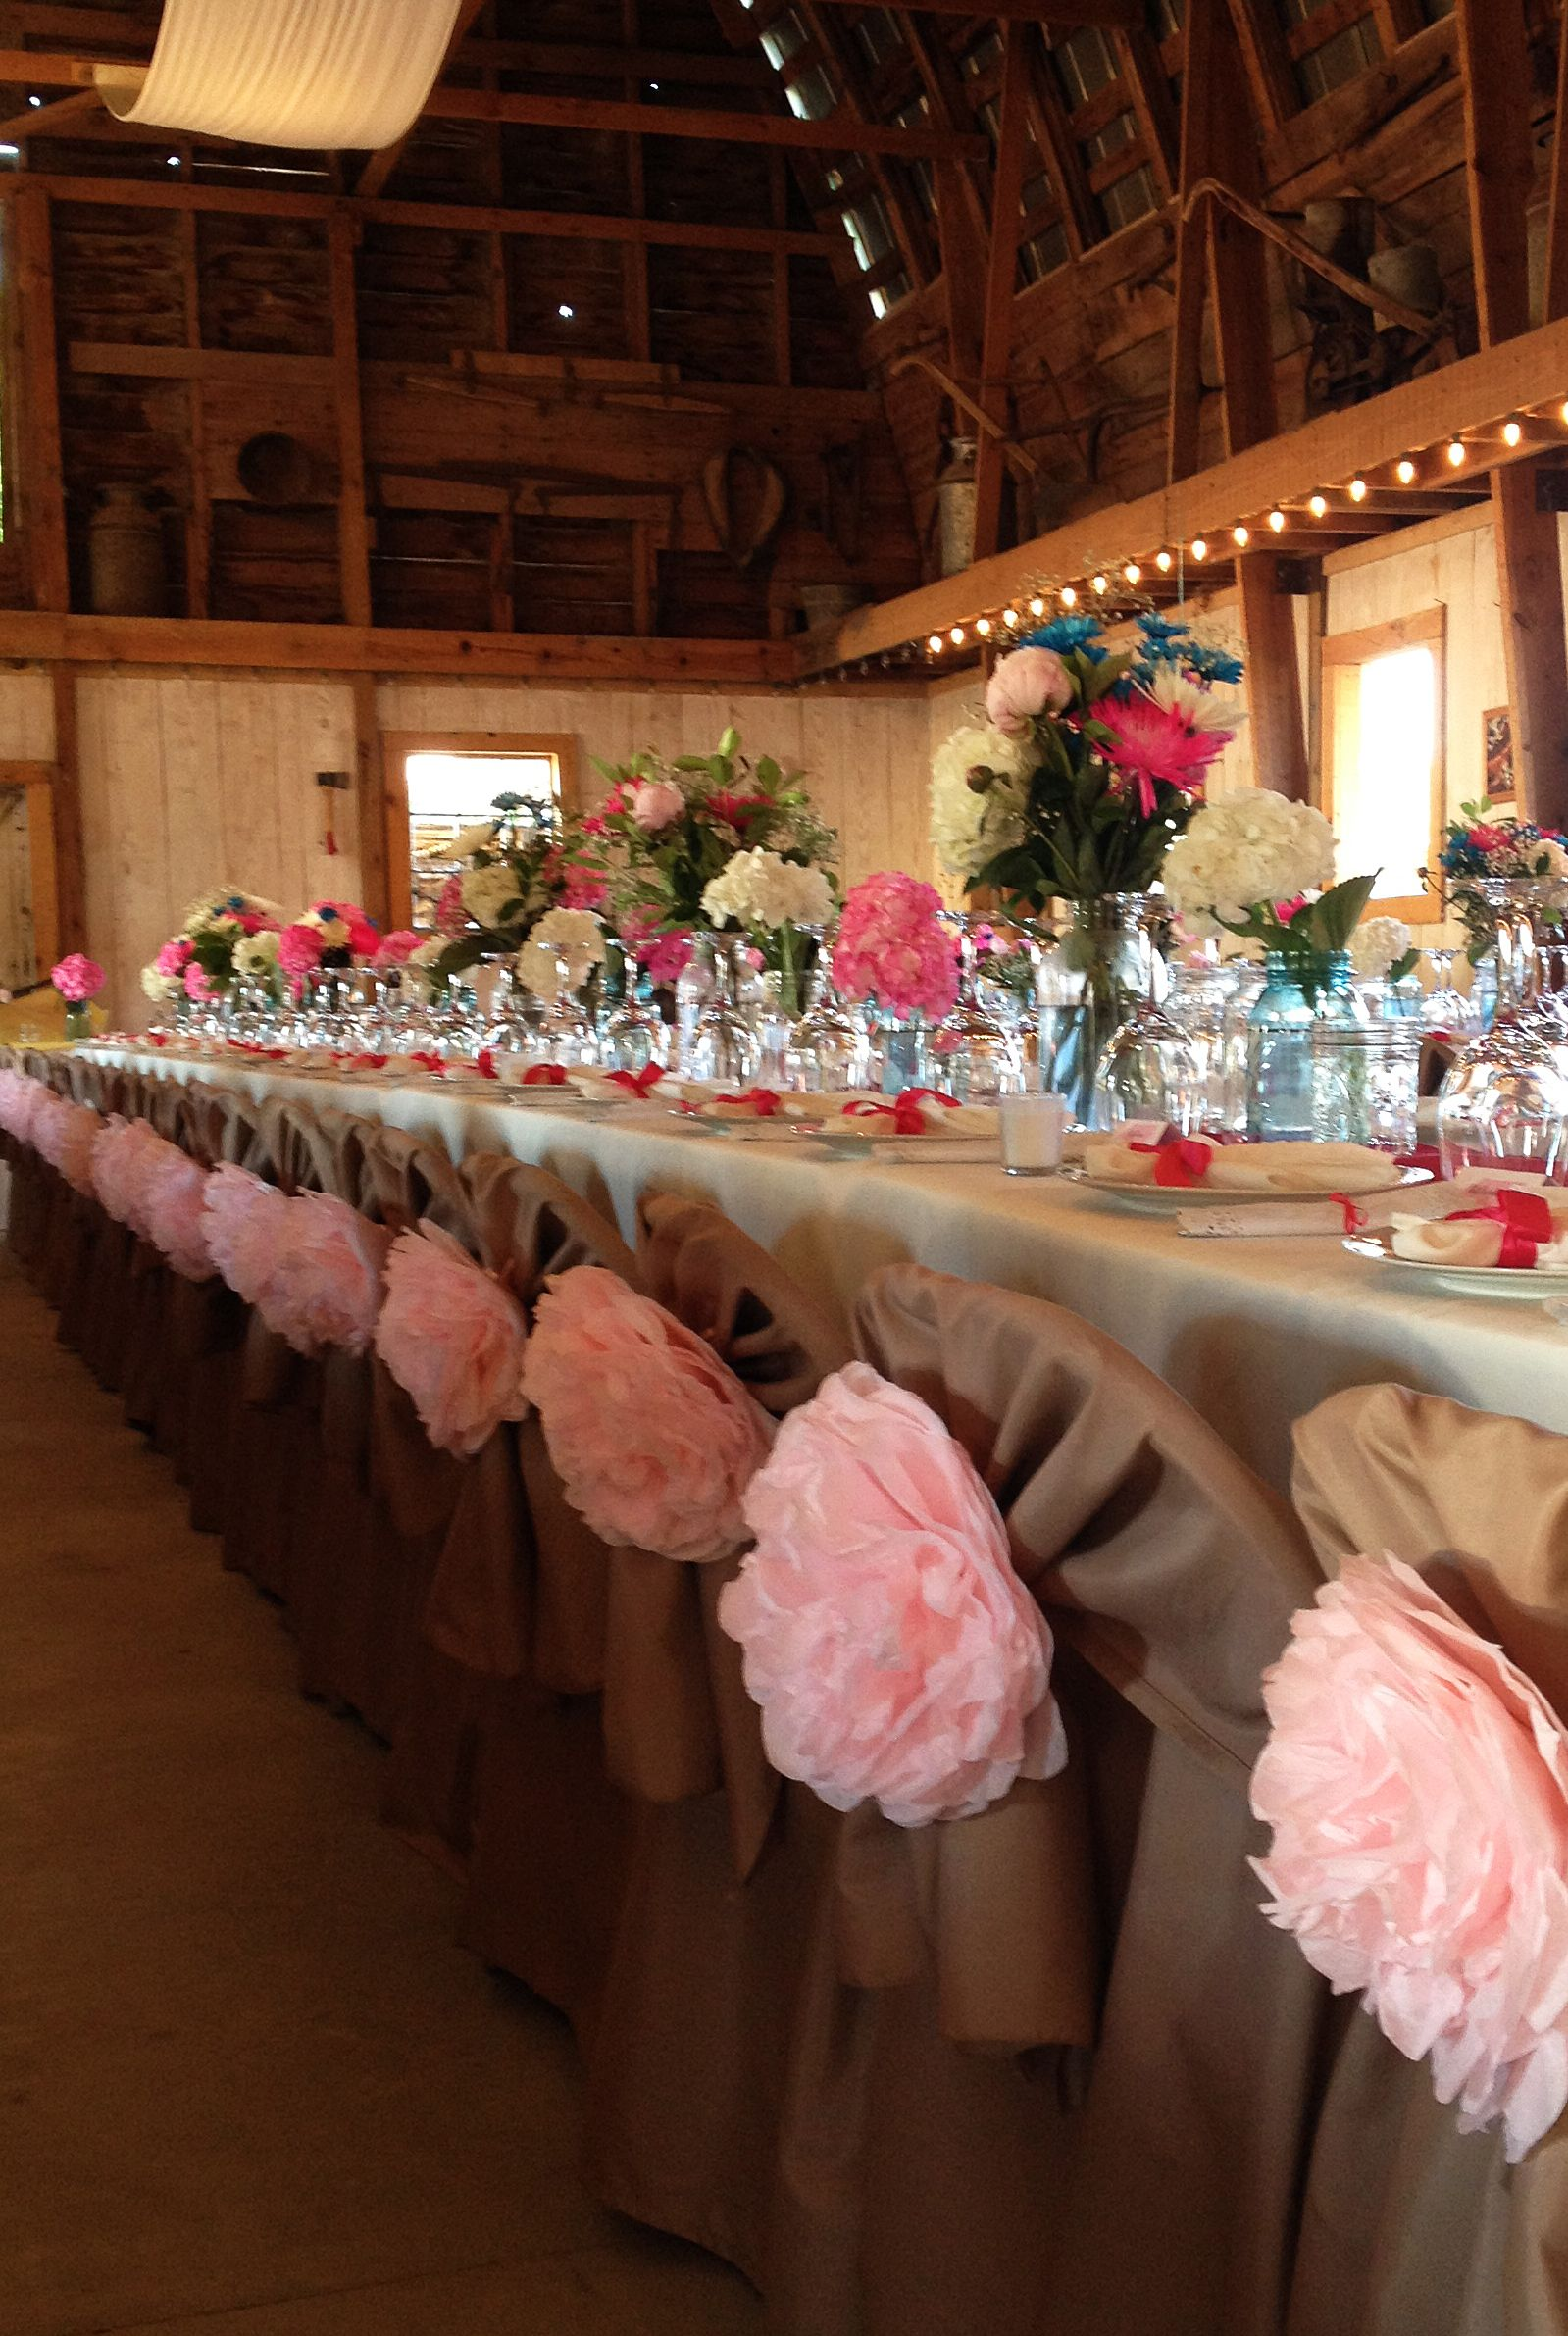 Chair covers to hide those nasty metal folding chairs